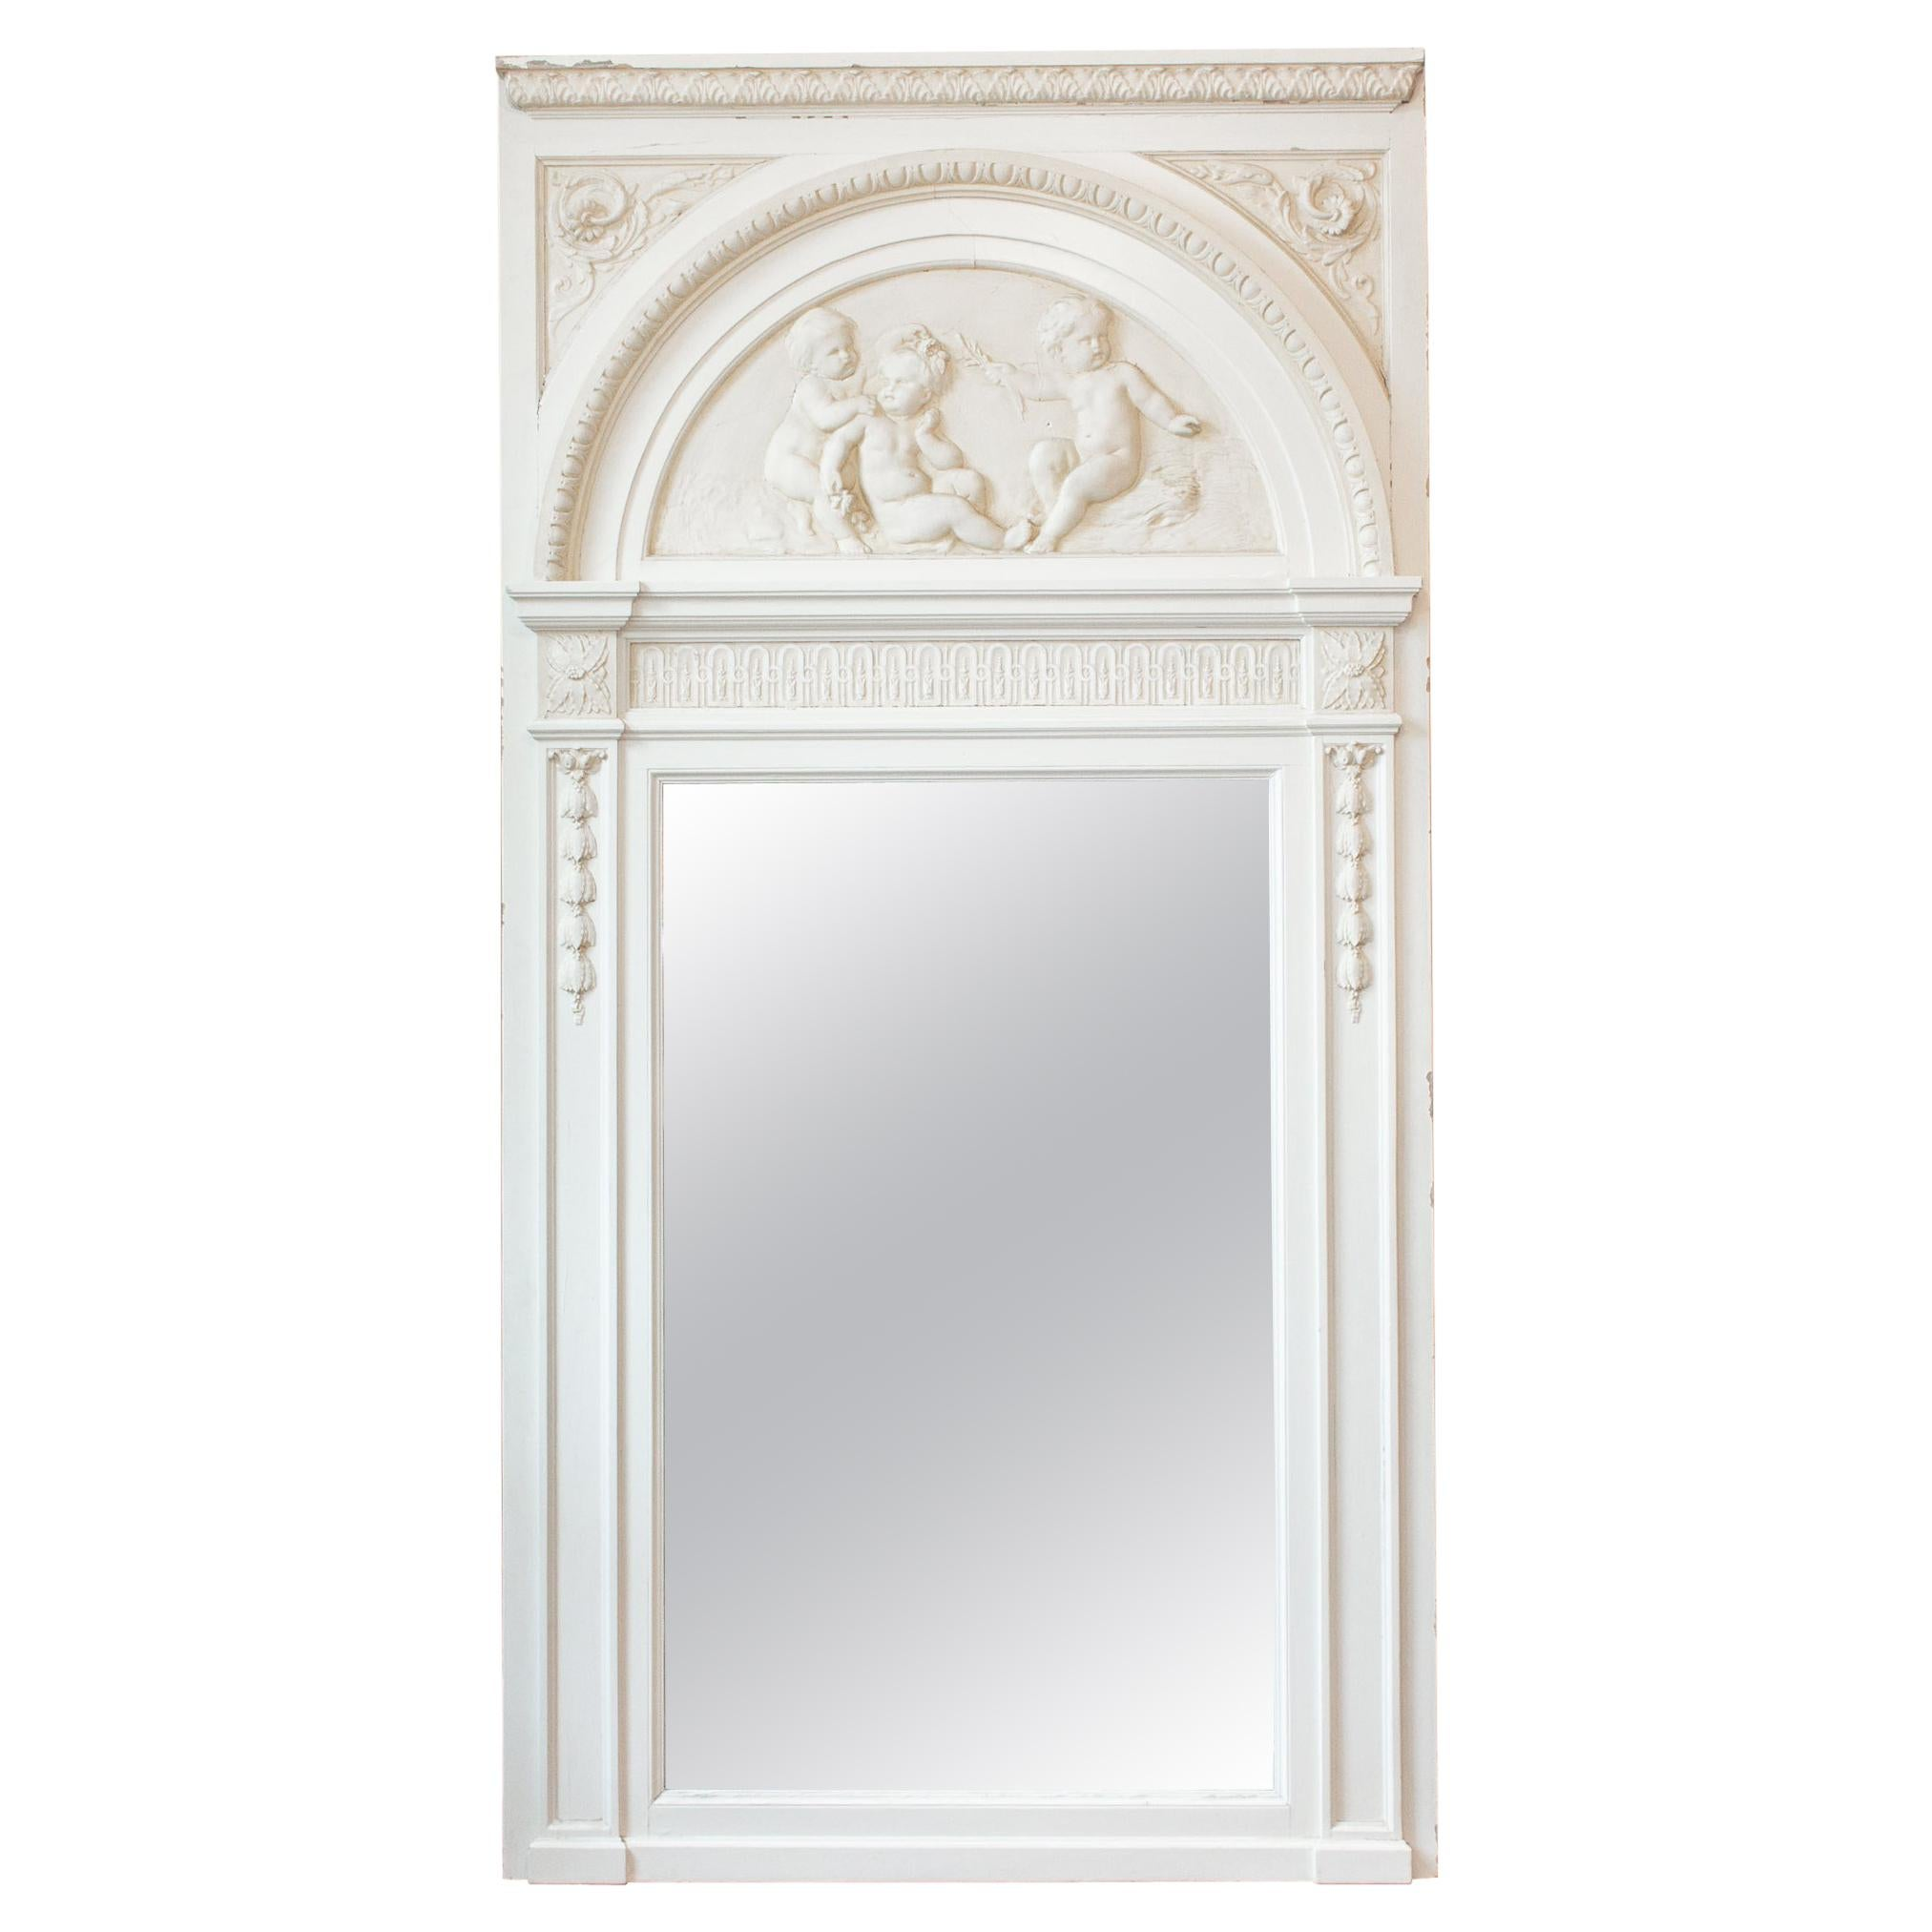 Antique French Painted Trumeau Mirror with Plaster Panel Detail in Antique White